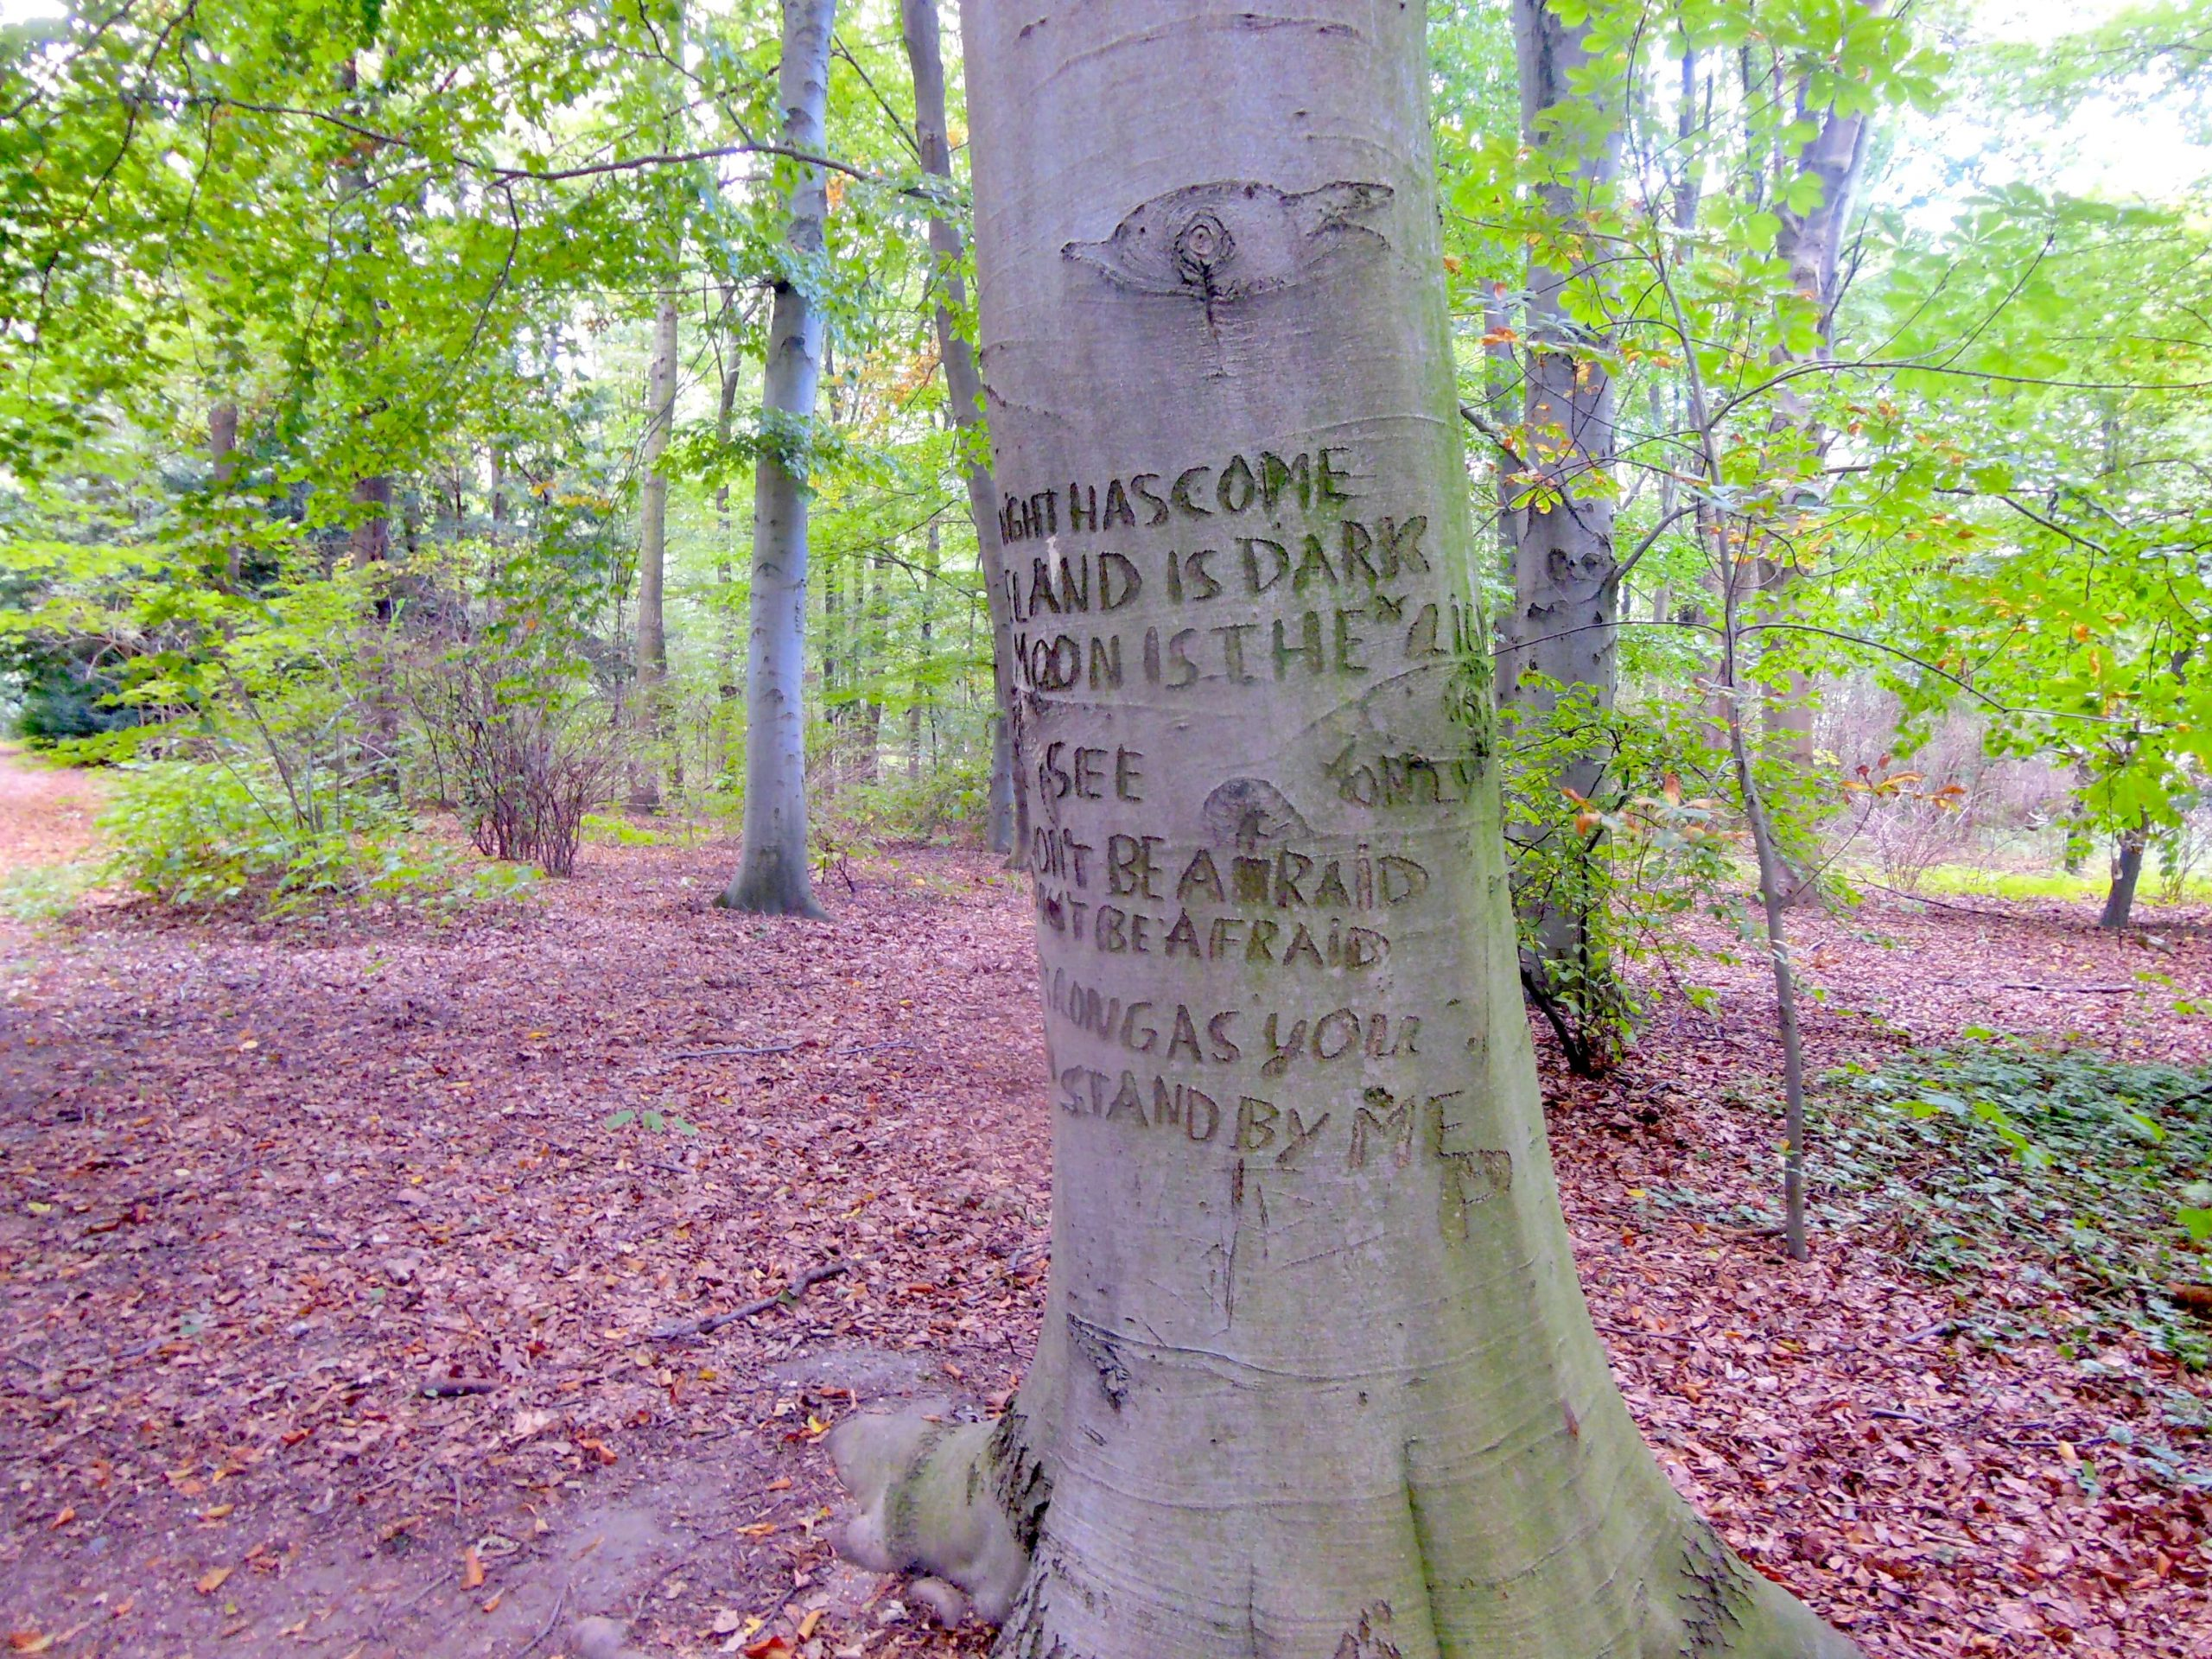 The Stand By Me Tree in Berlin - A tree with the opening lyrics to the song Stand By Me carved into it